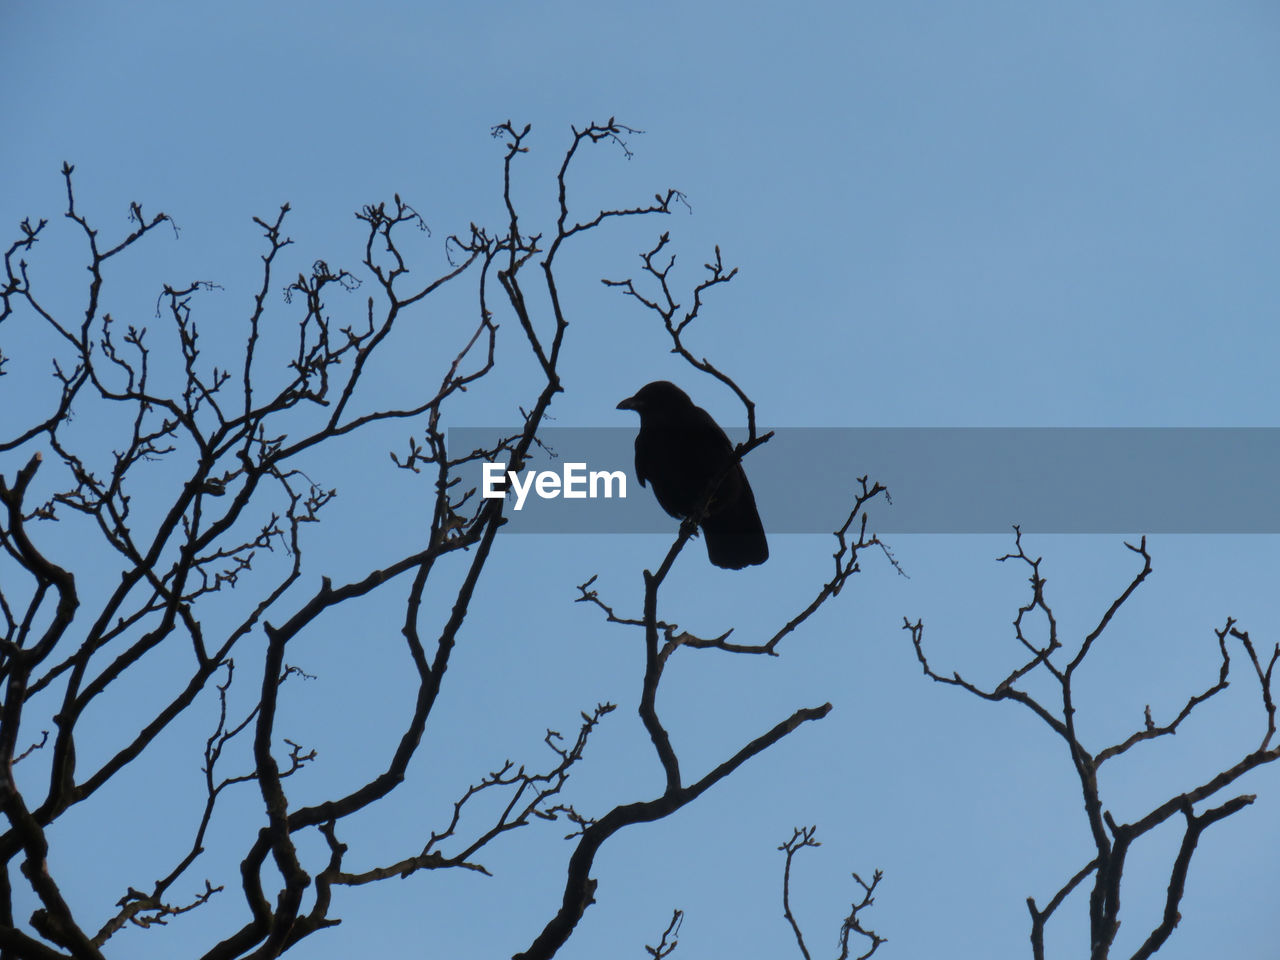 bird, one animal, animal themes, animals in the wild, branch, low angle view, clear sky, nature, perching, outdoors, animal wildlife, no people, tree, day, bare tree, full length, beauty in nature, sky, bird of prey